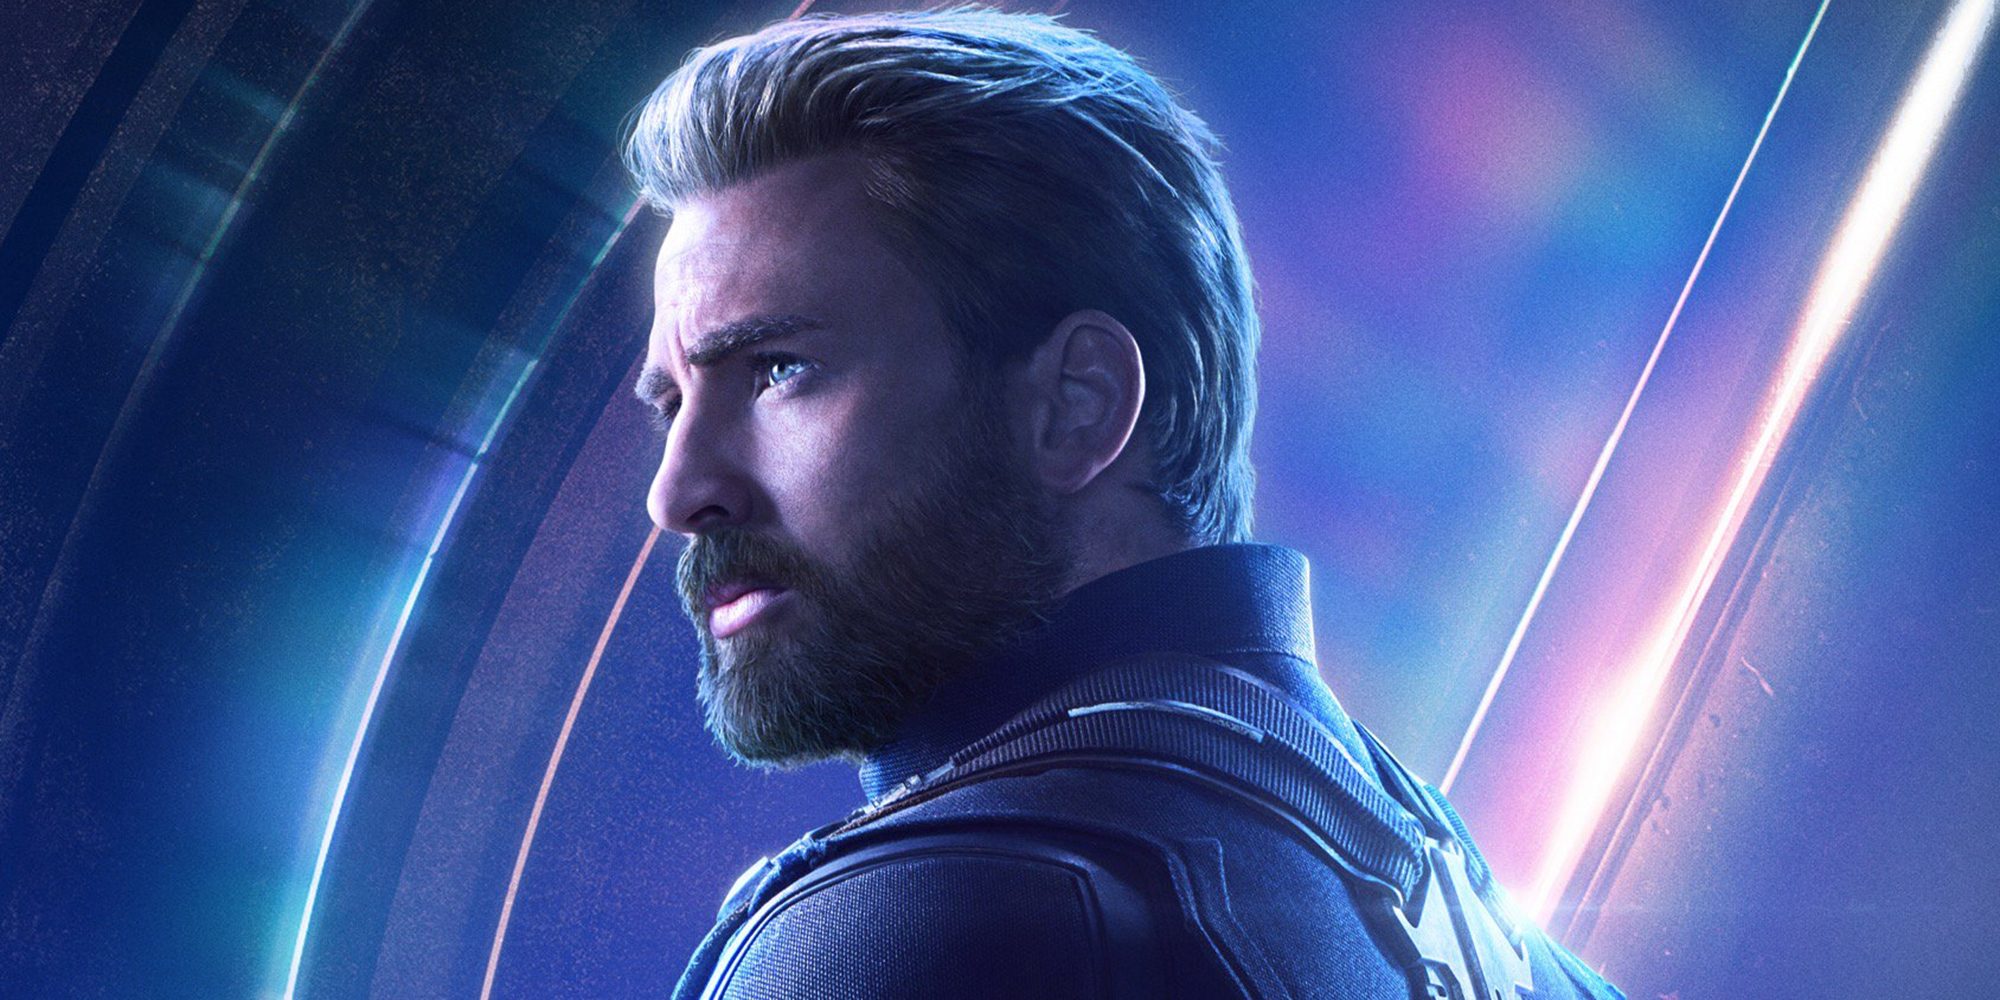 Chris Evans Responds to Cryptic MCU Farewell Tweet